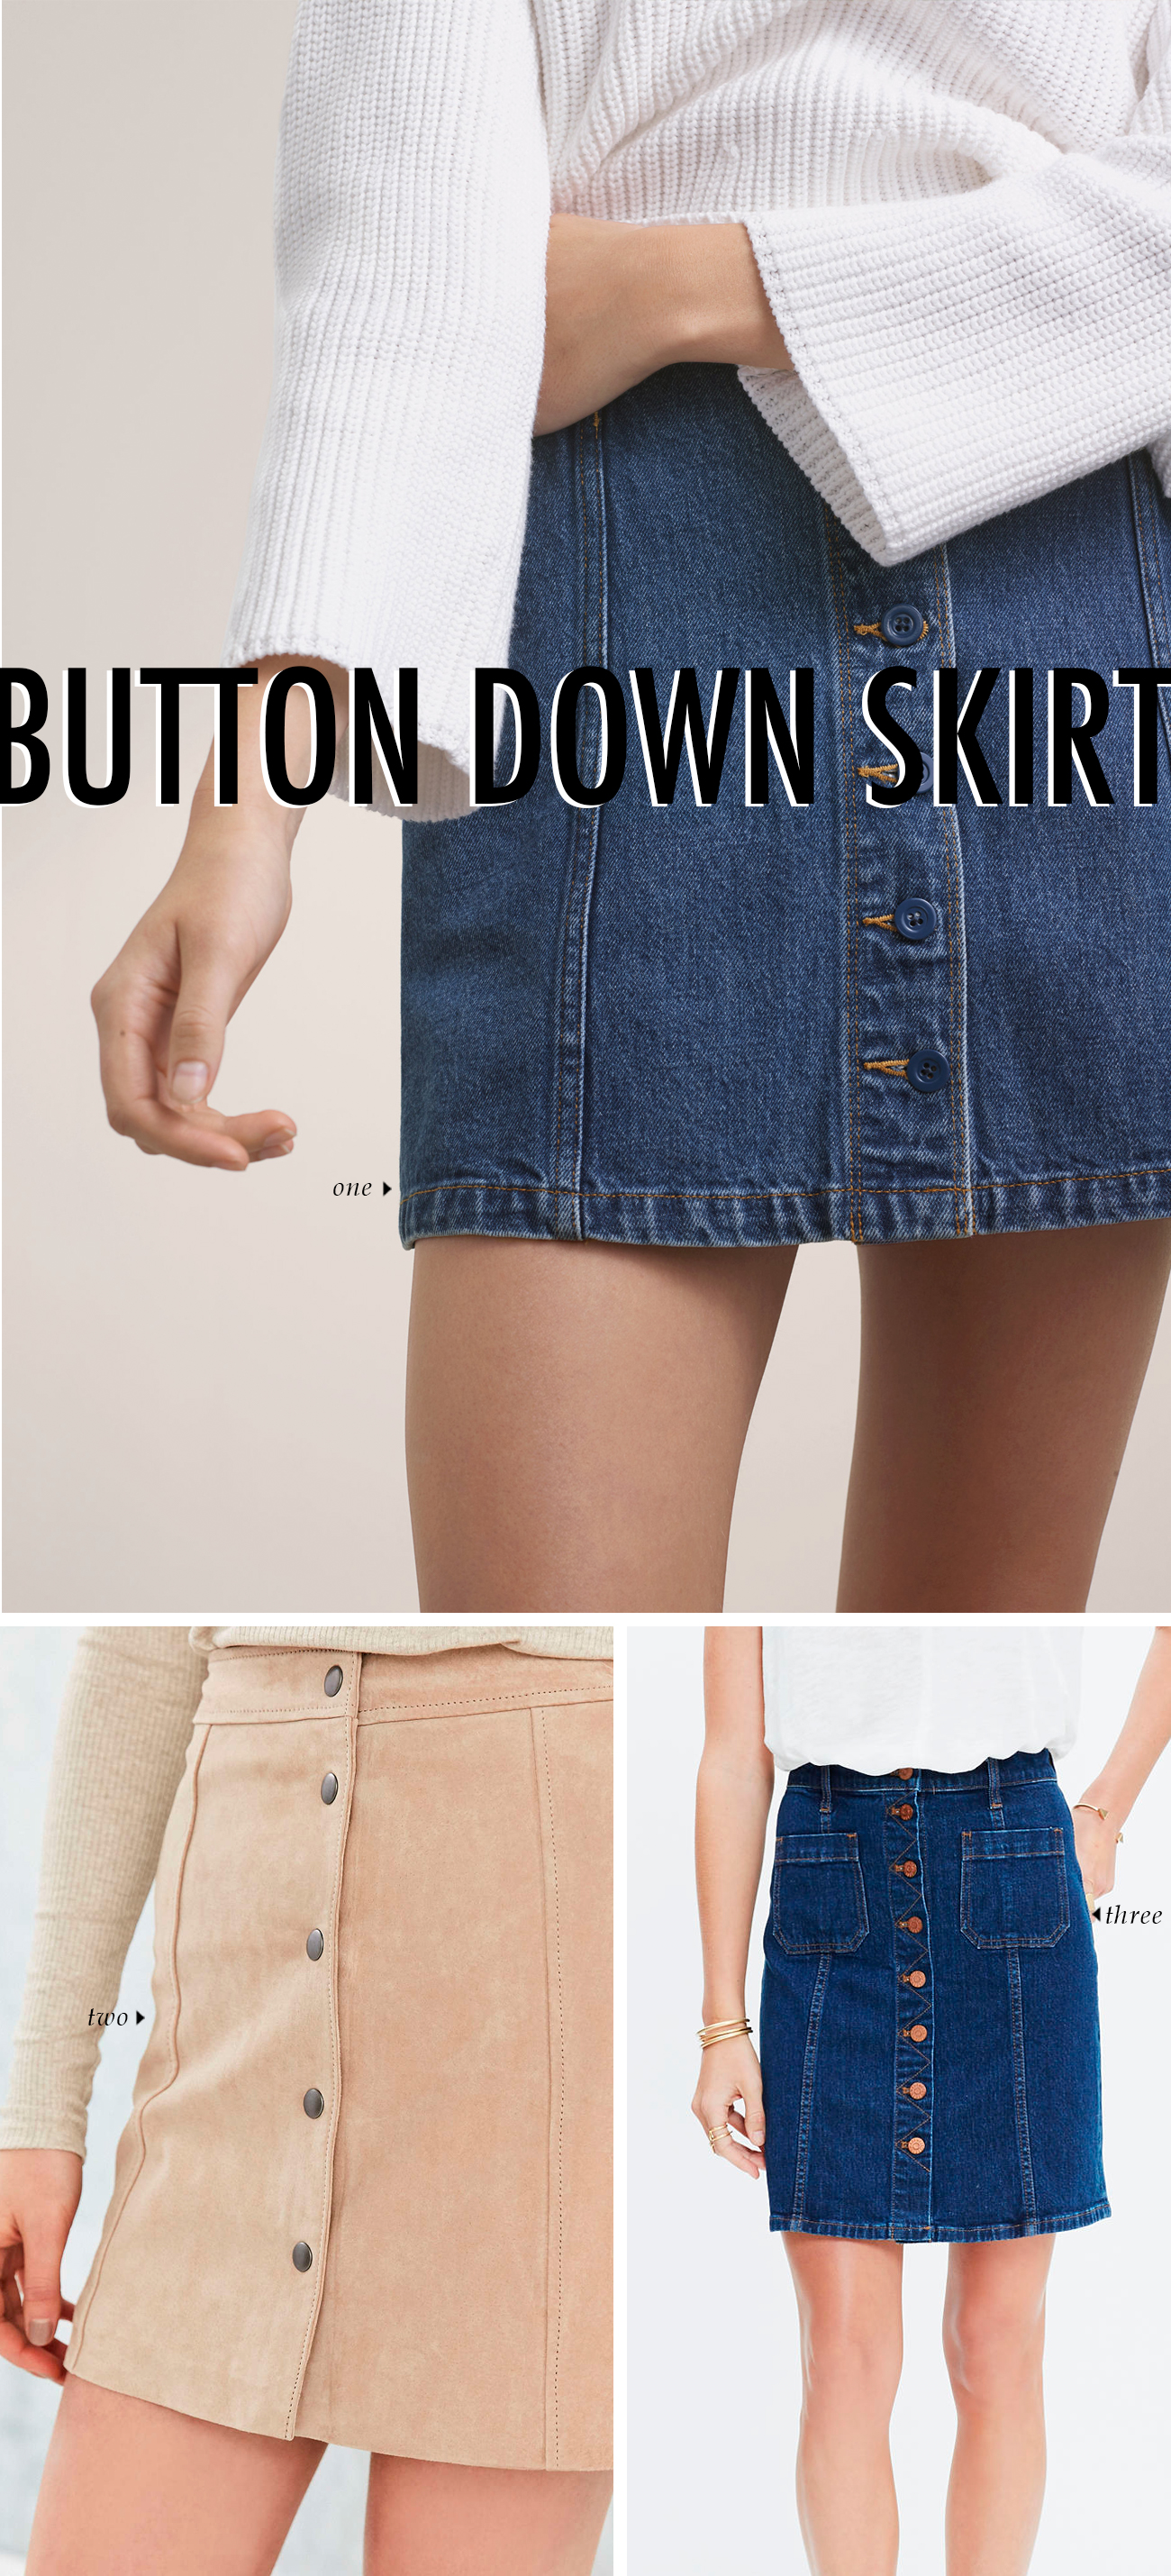 spring summer 2016 clothing trends - BUTTON DOWN SKIRT #trends